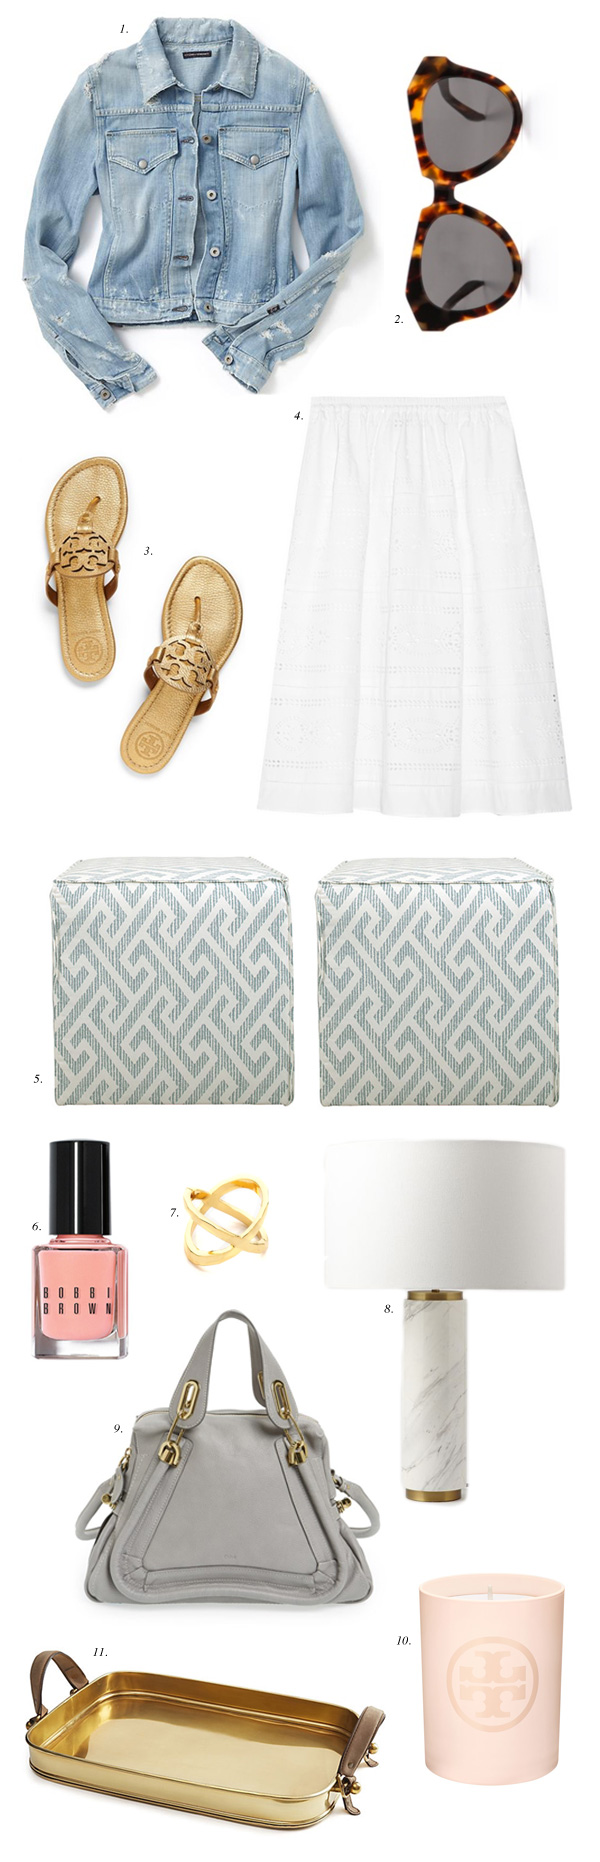 summer-outfit-ideas